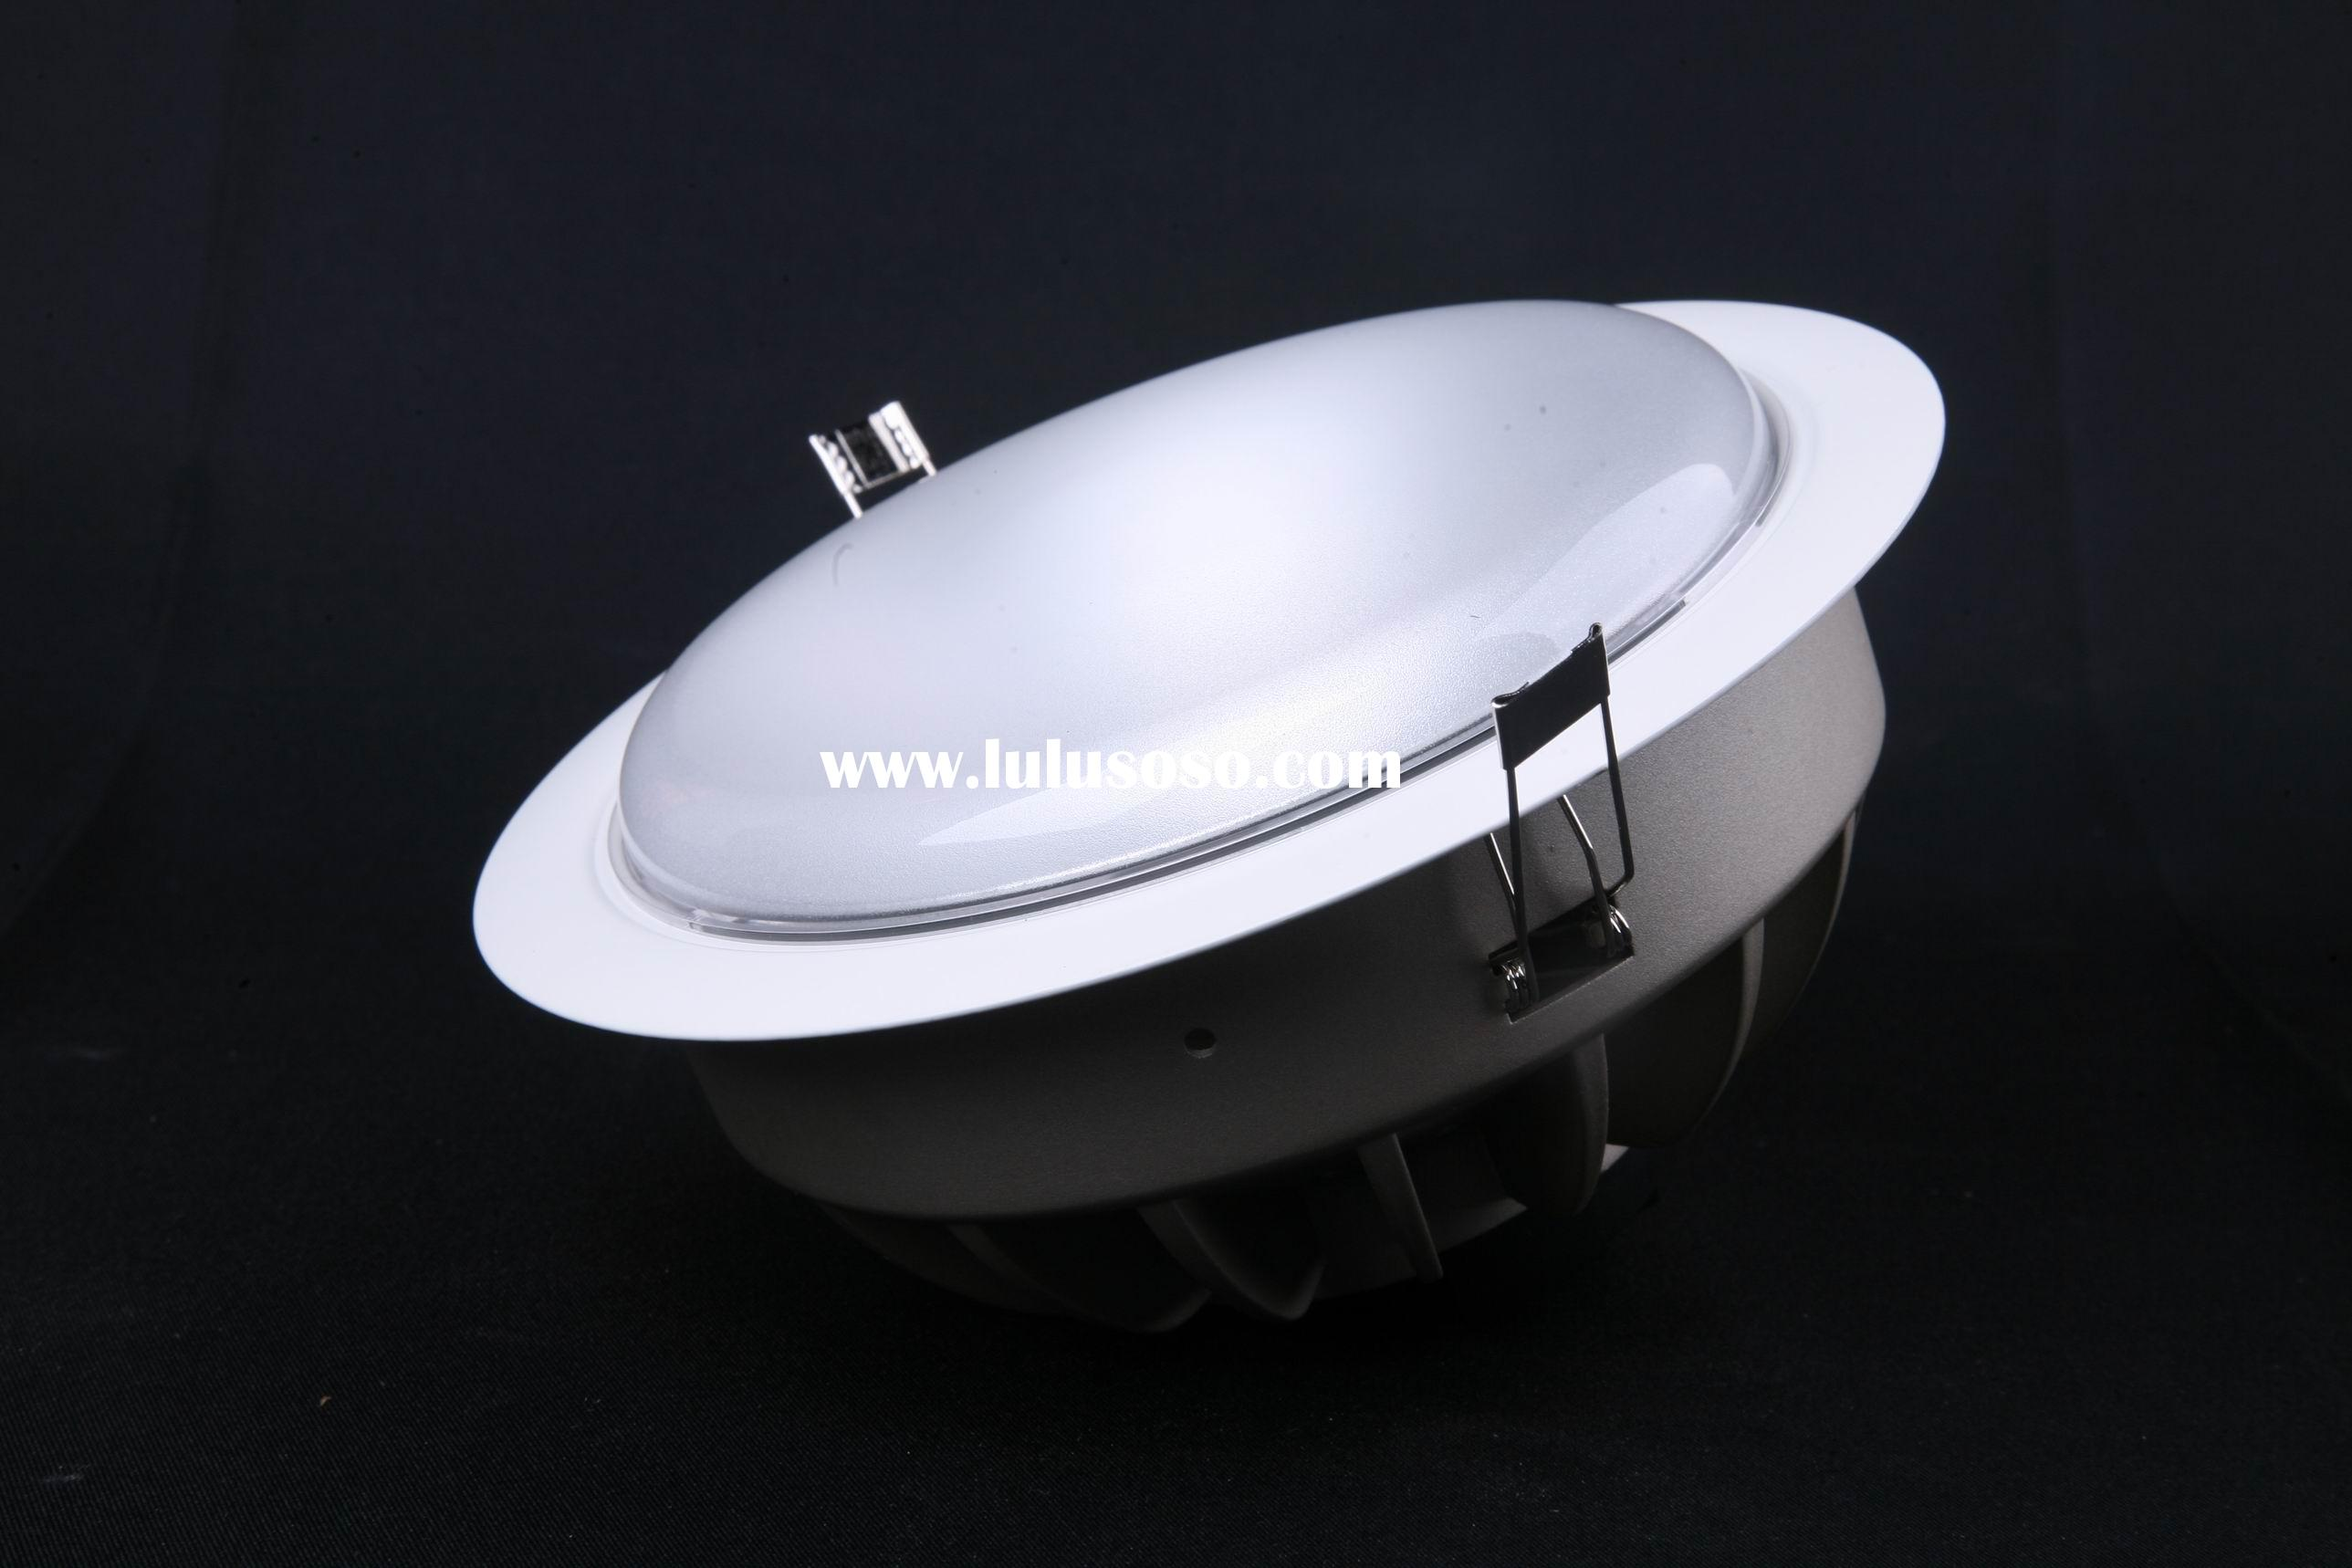 1x20 W high power dimmable led downlight